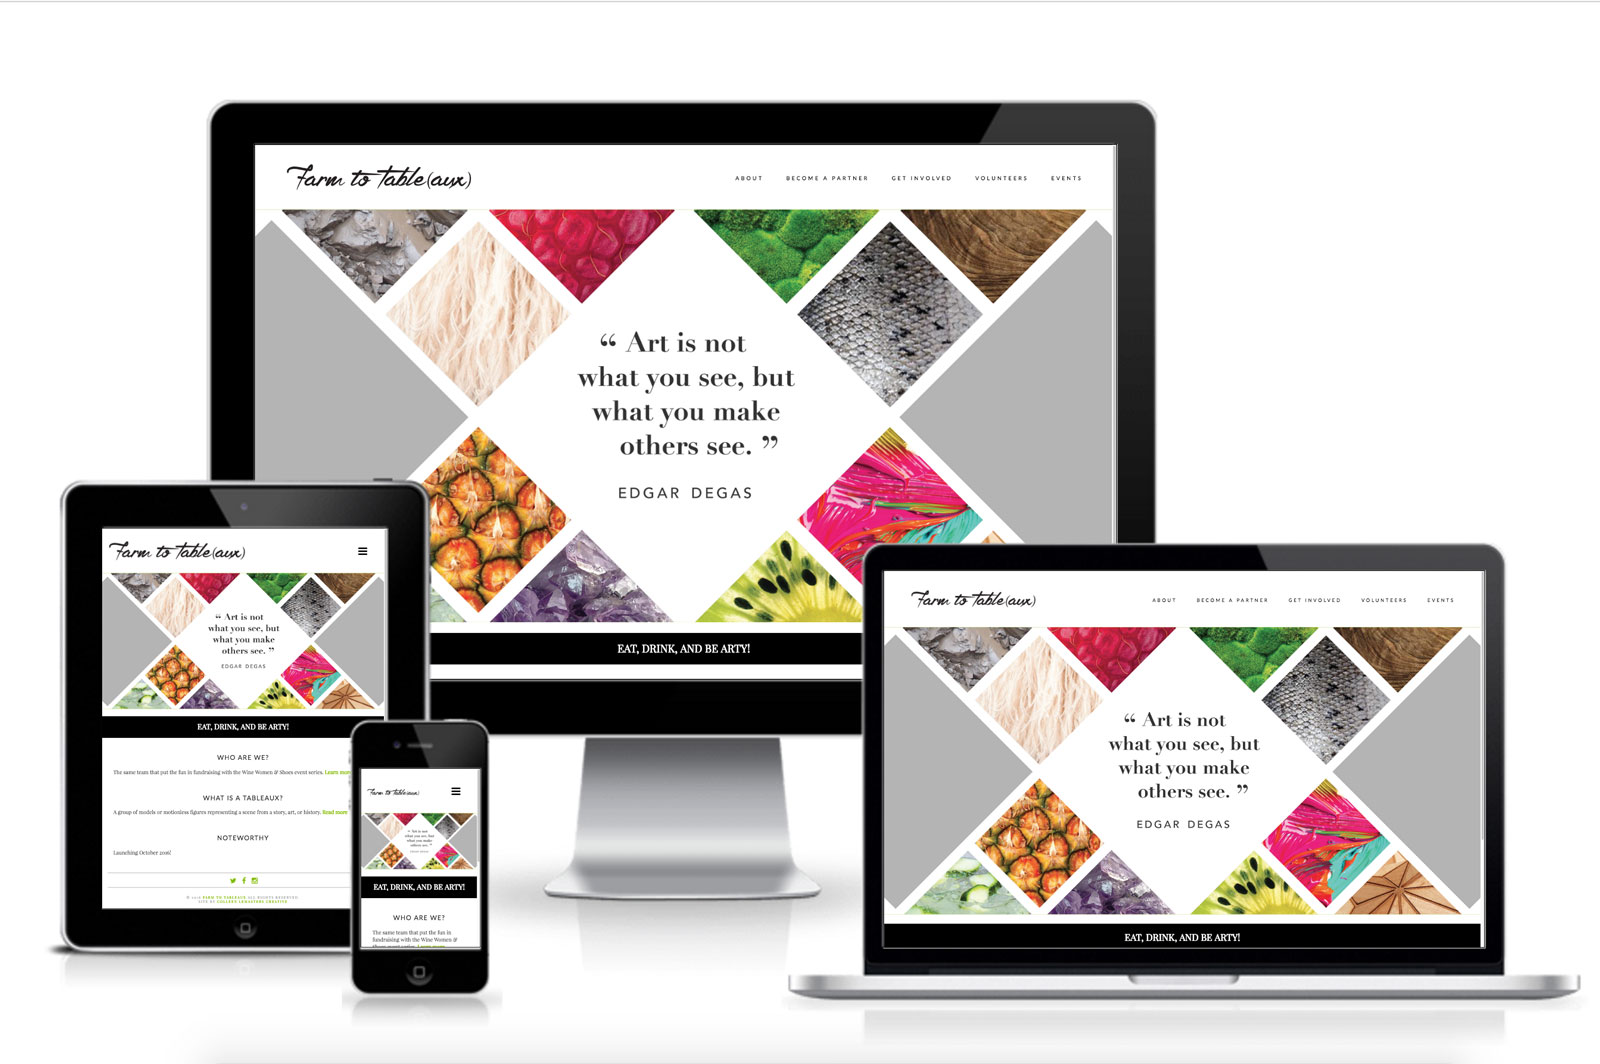 farm-to-tableaux_clcreative-site